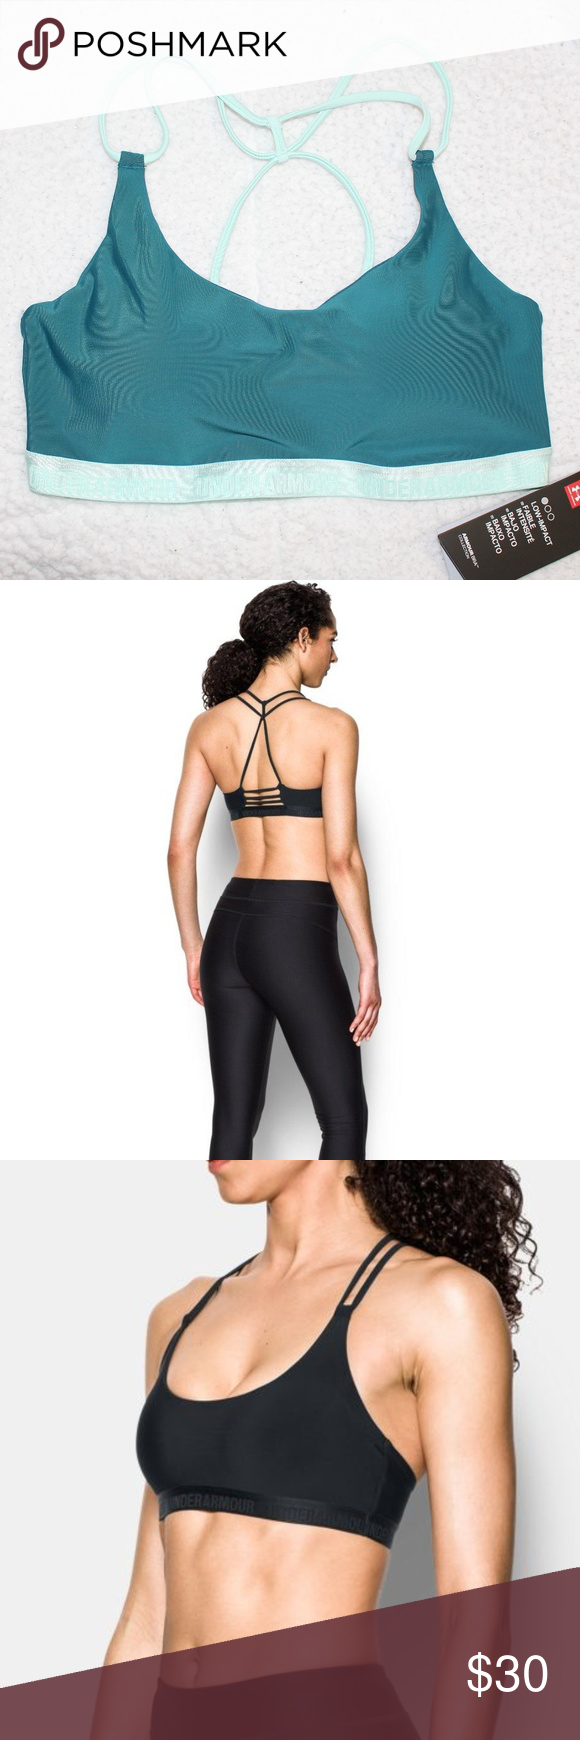 867e07df43d70 NWT Under Armour Low Triangle Sports Bralette Selling NWT Under Armour Low Triangle  Back Sports Bralette